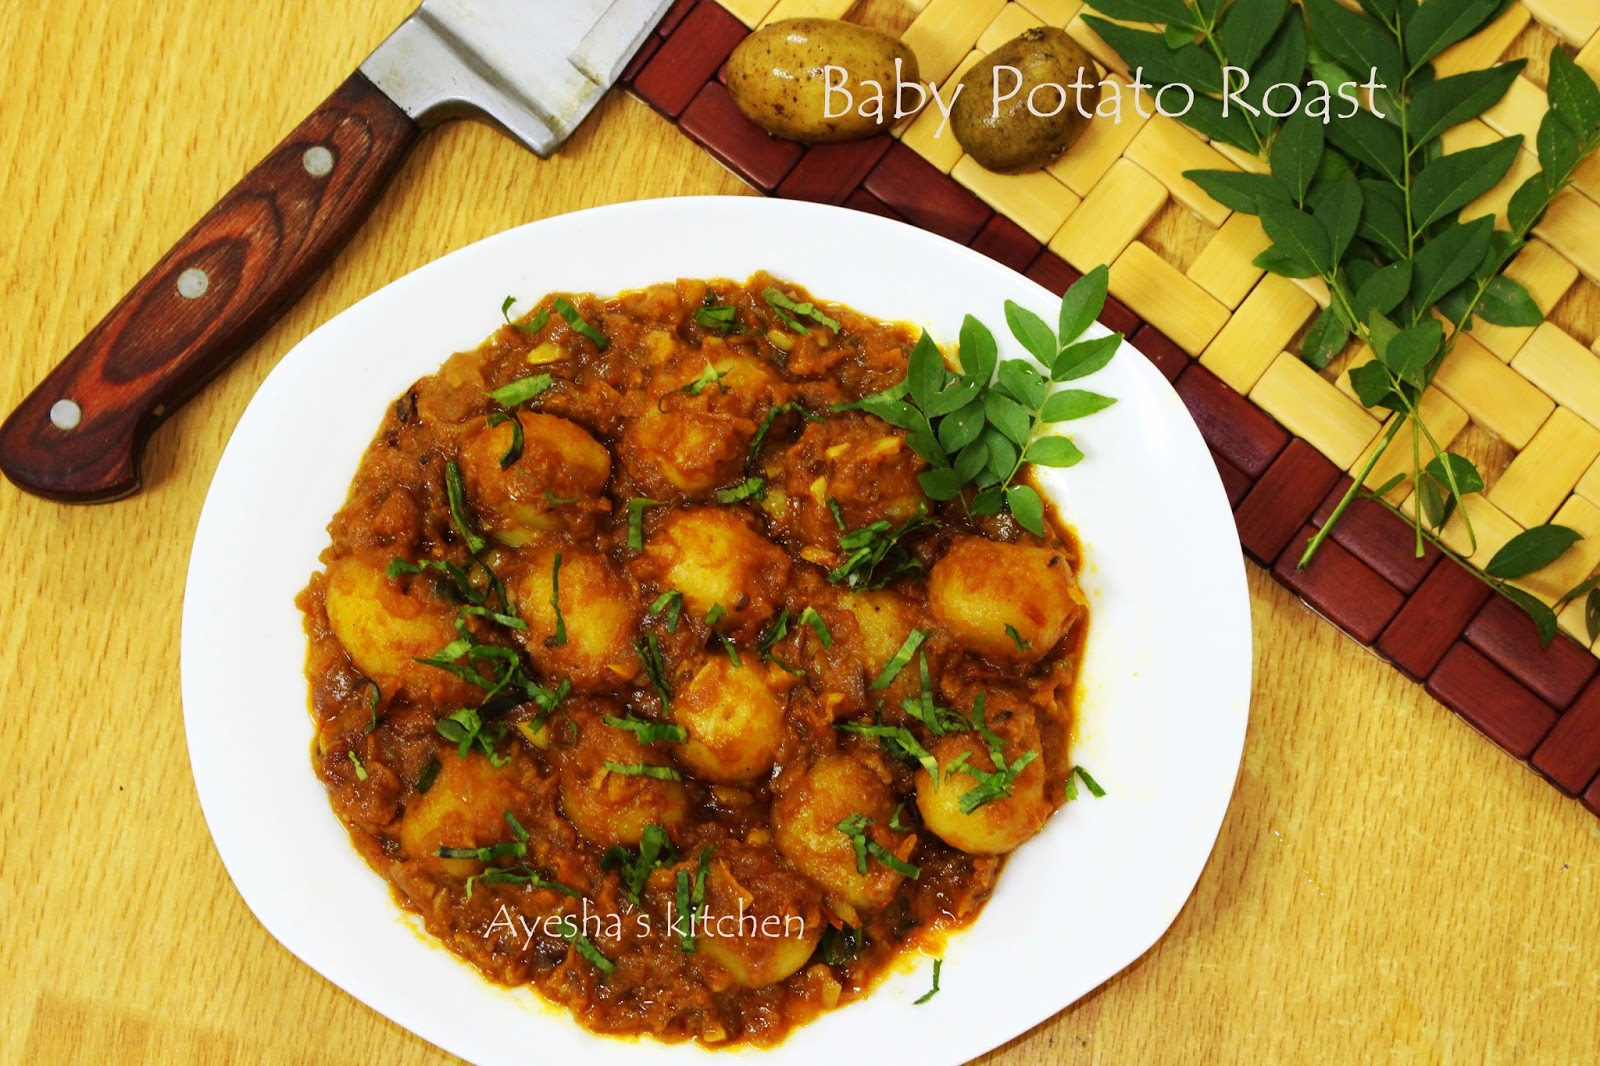 Spicy indian curry with baby potatoes baby potato roasted recipes roasted baby potato recipes forumfinder